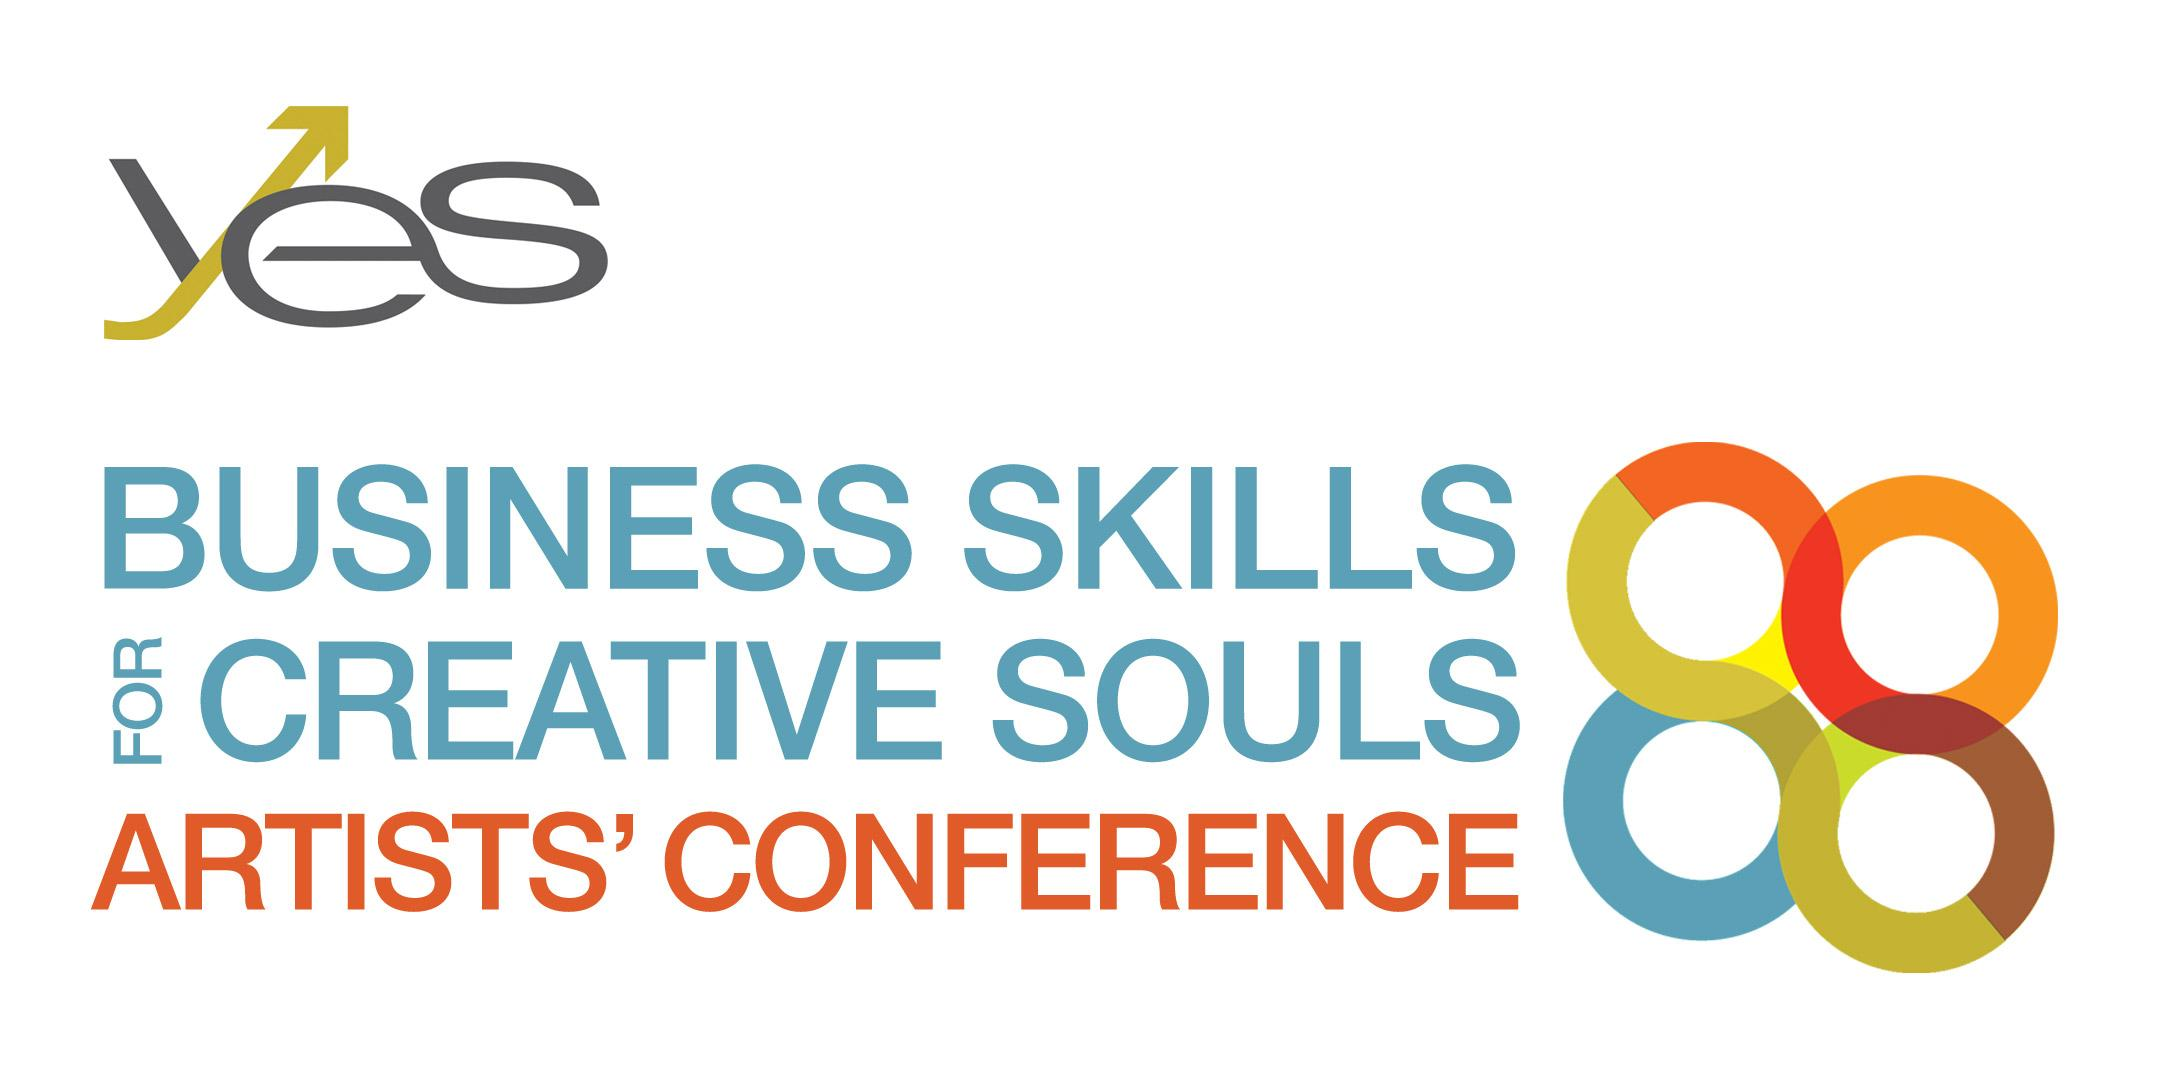 Business Skills for Creative Souls Artists Conference 2020